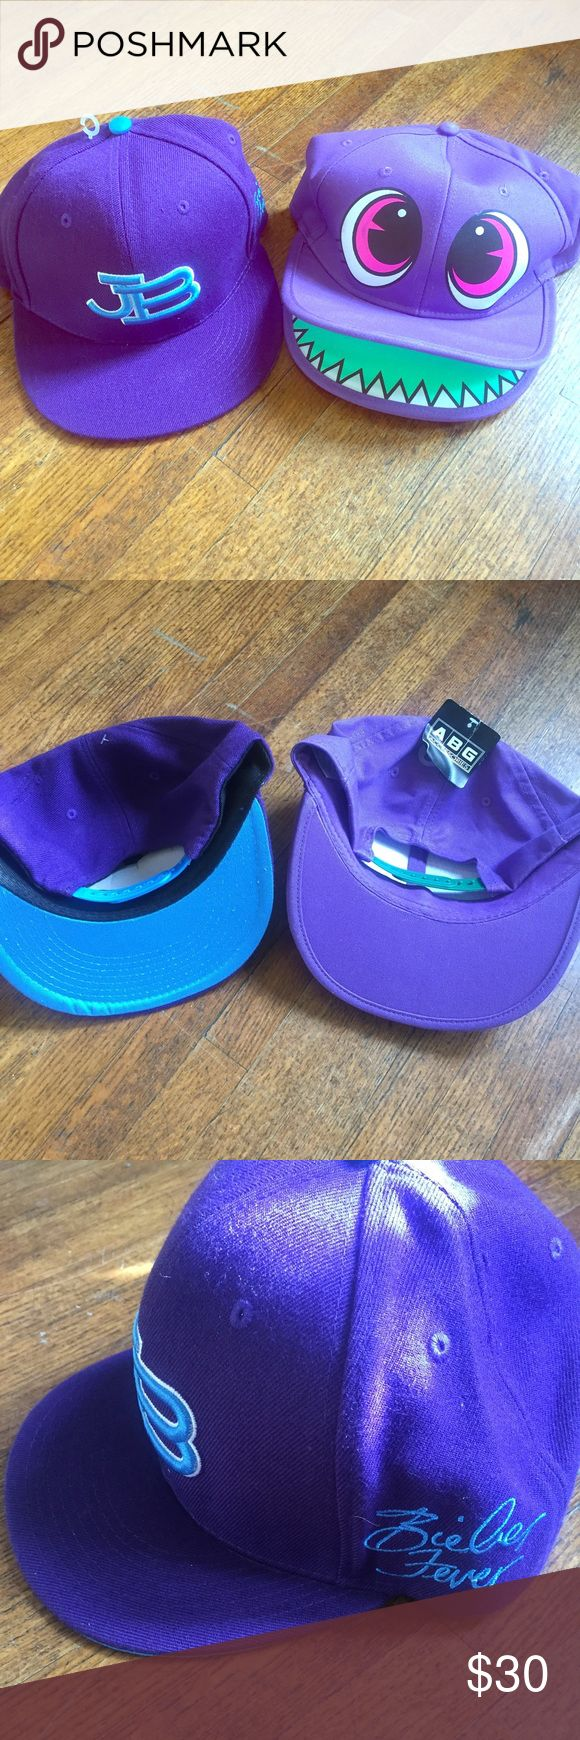 Justin Bieber hats and Christmas stocking. Justin Bieber Purple flat bill hat and monster purple hat. Also comes with Justin Bieber Christmas Stocking. Know a fan? Or! Looking for a perfect Halloween costume? Easy fix! Adjustable snap backs:) Accessories Hats